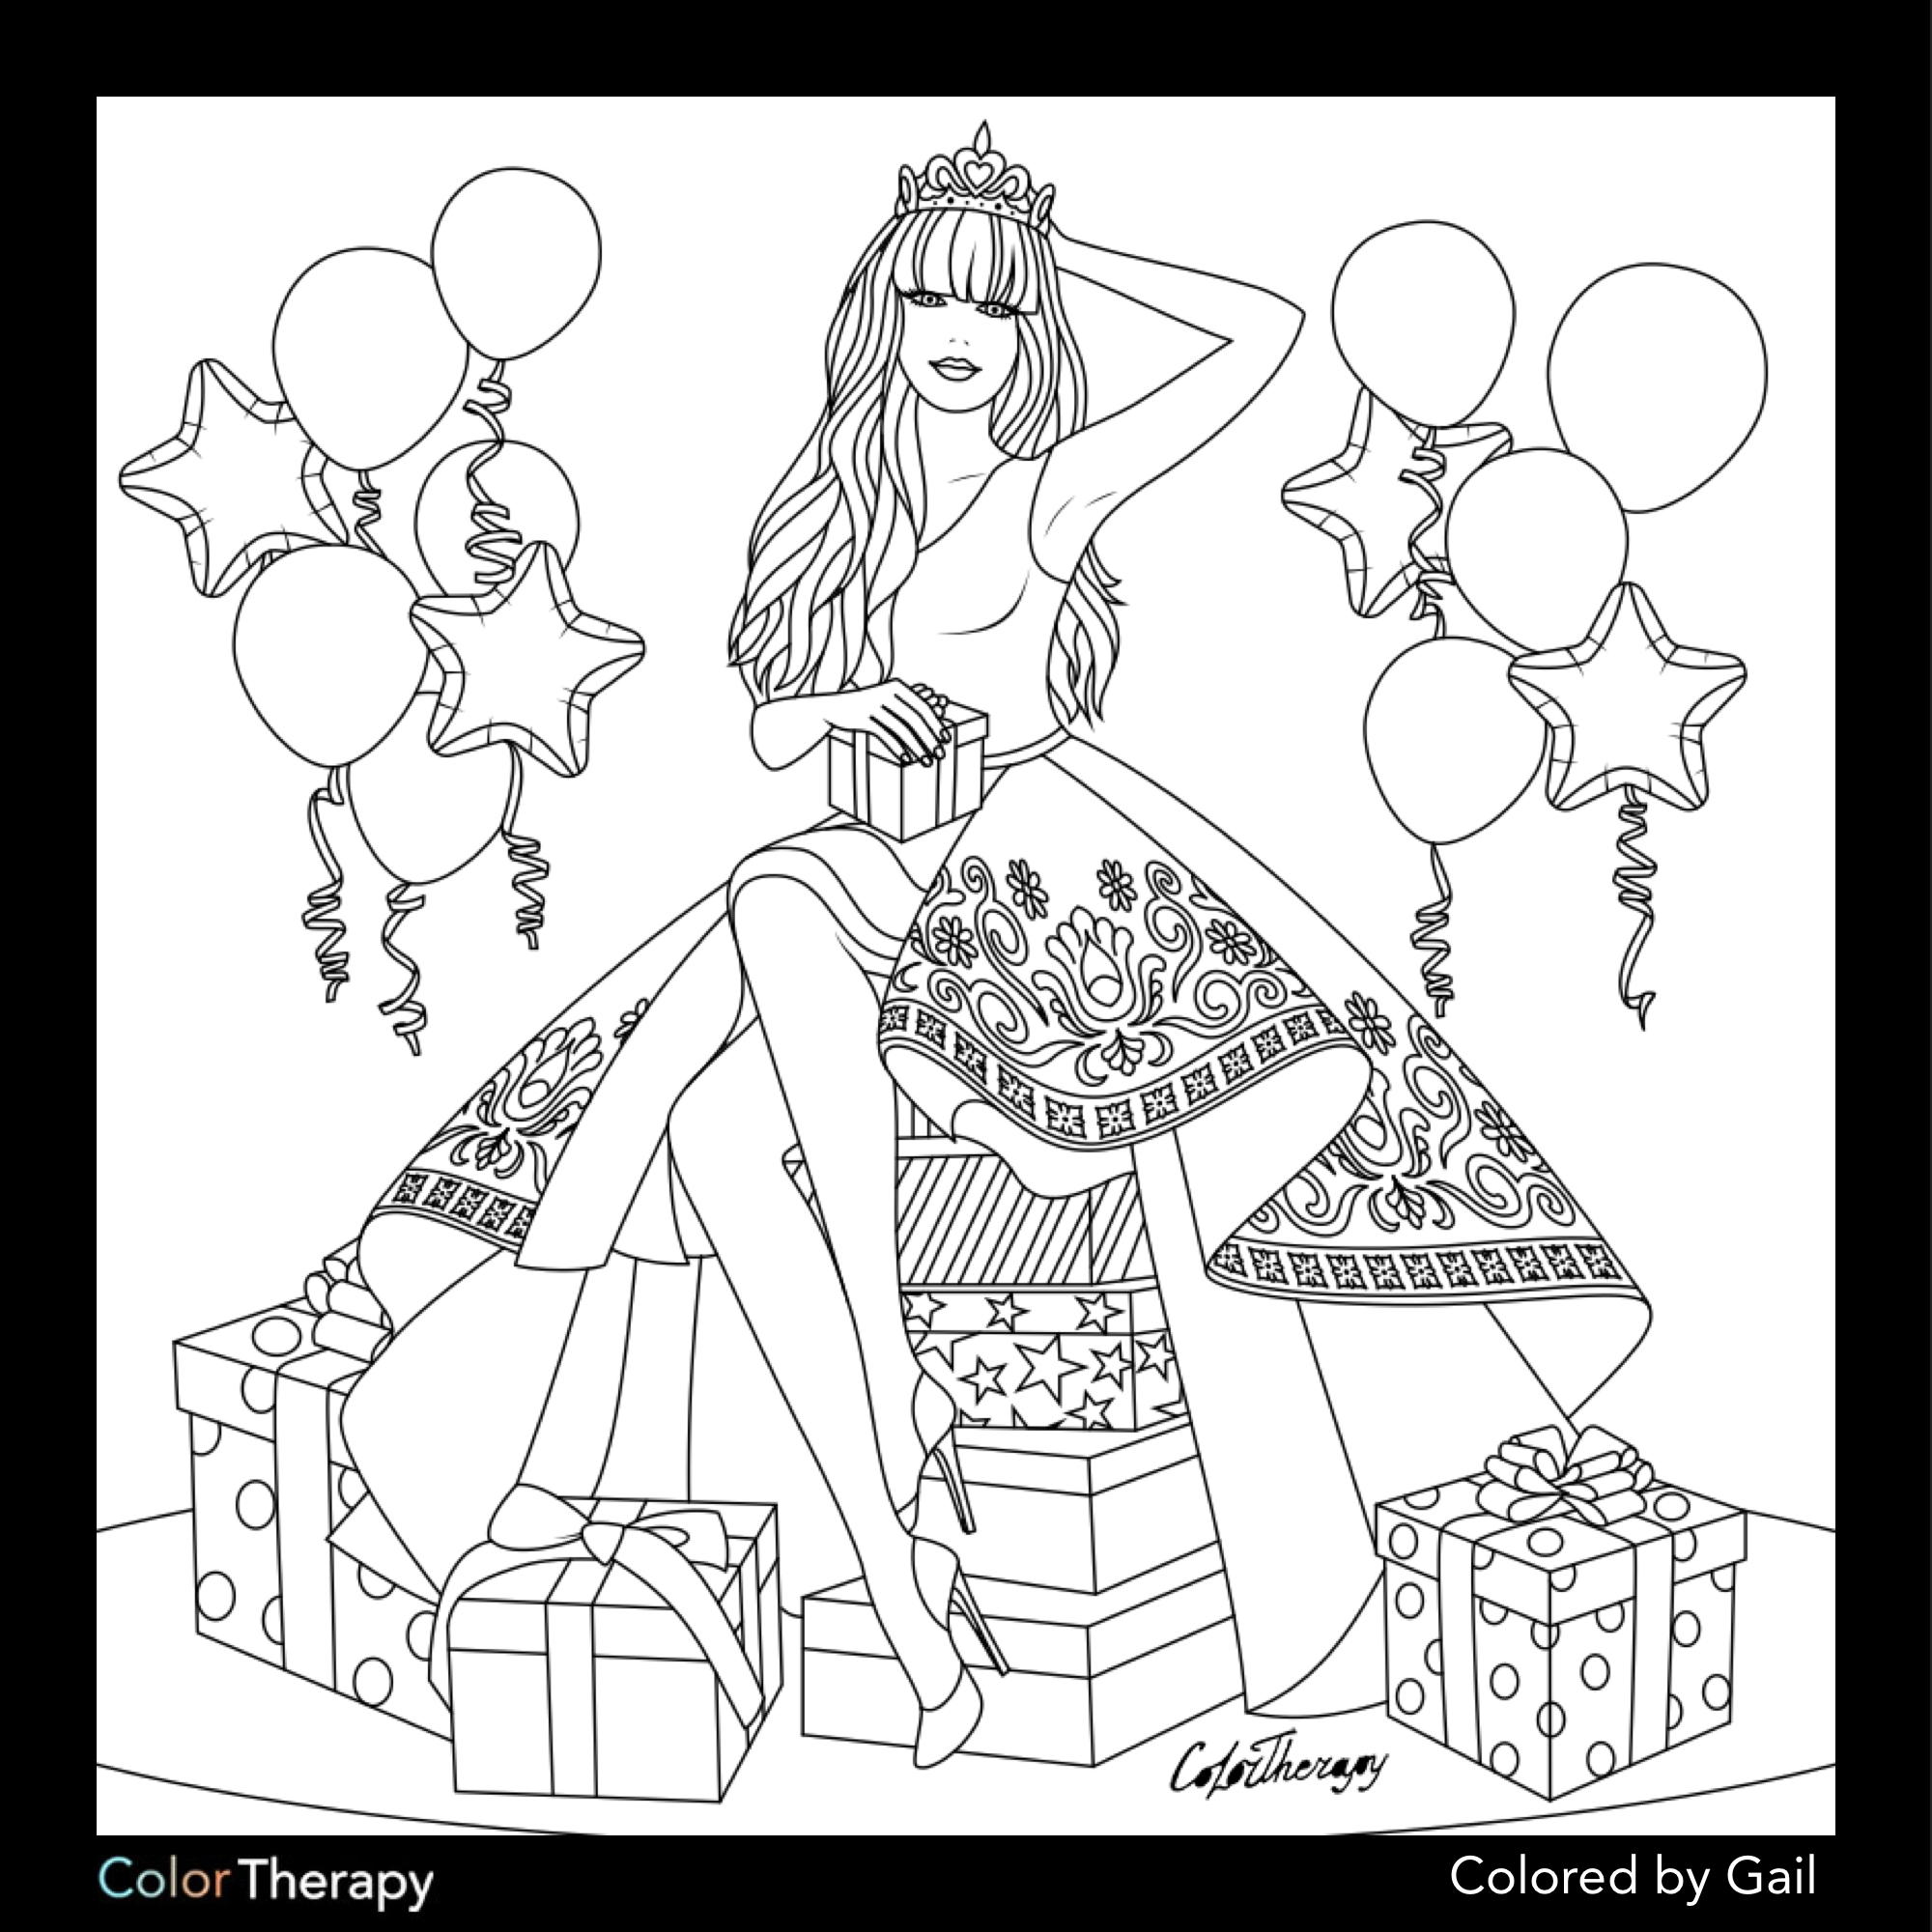 2000x2000 Therapeutic Coloring Pages With Wallpaper Desktop Background New